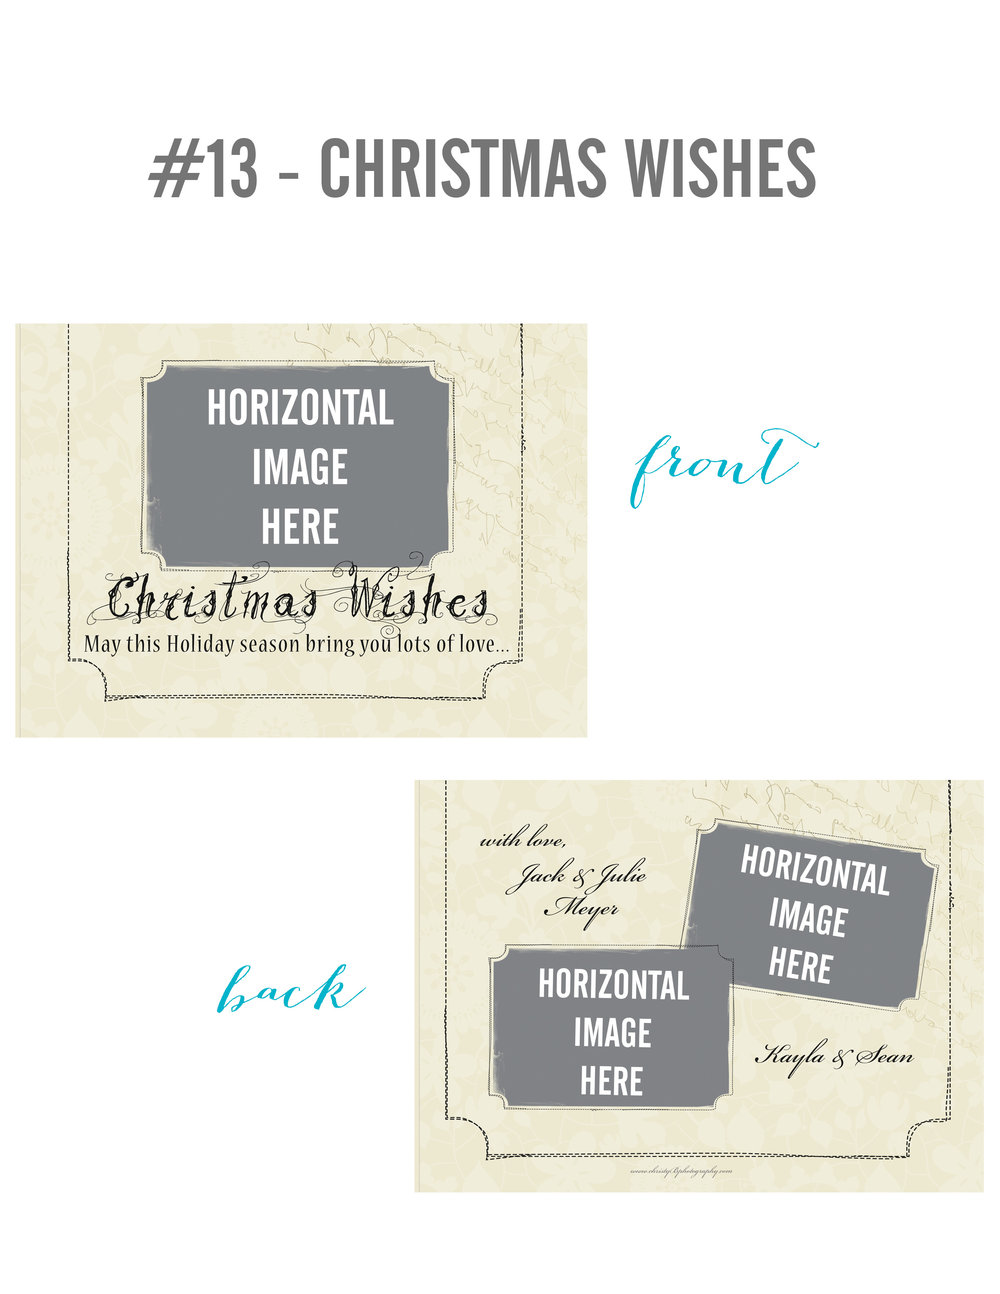 13-CHRISTMAS WISHES.jpg